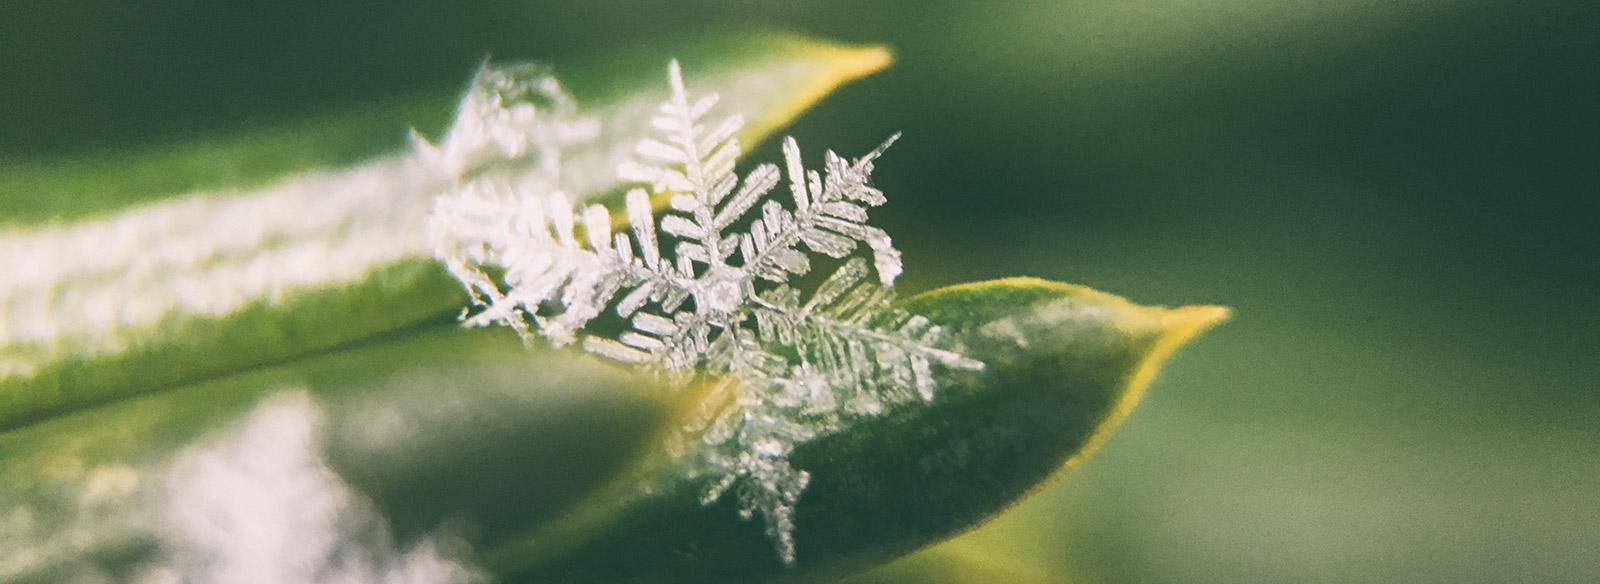 snowflake on a green leaf